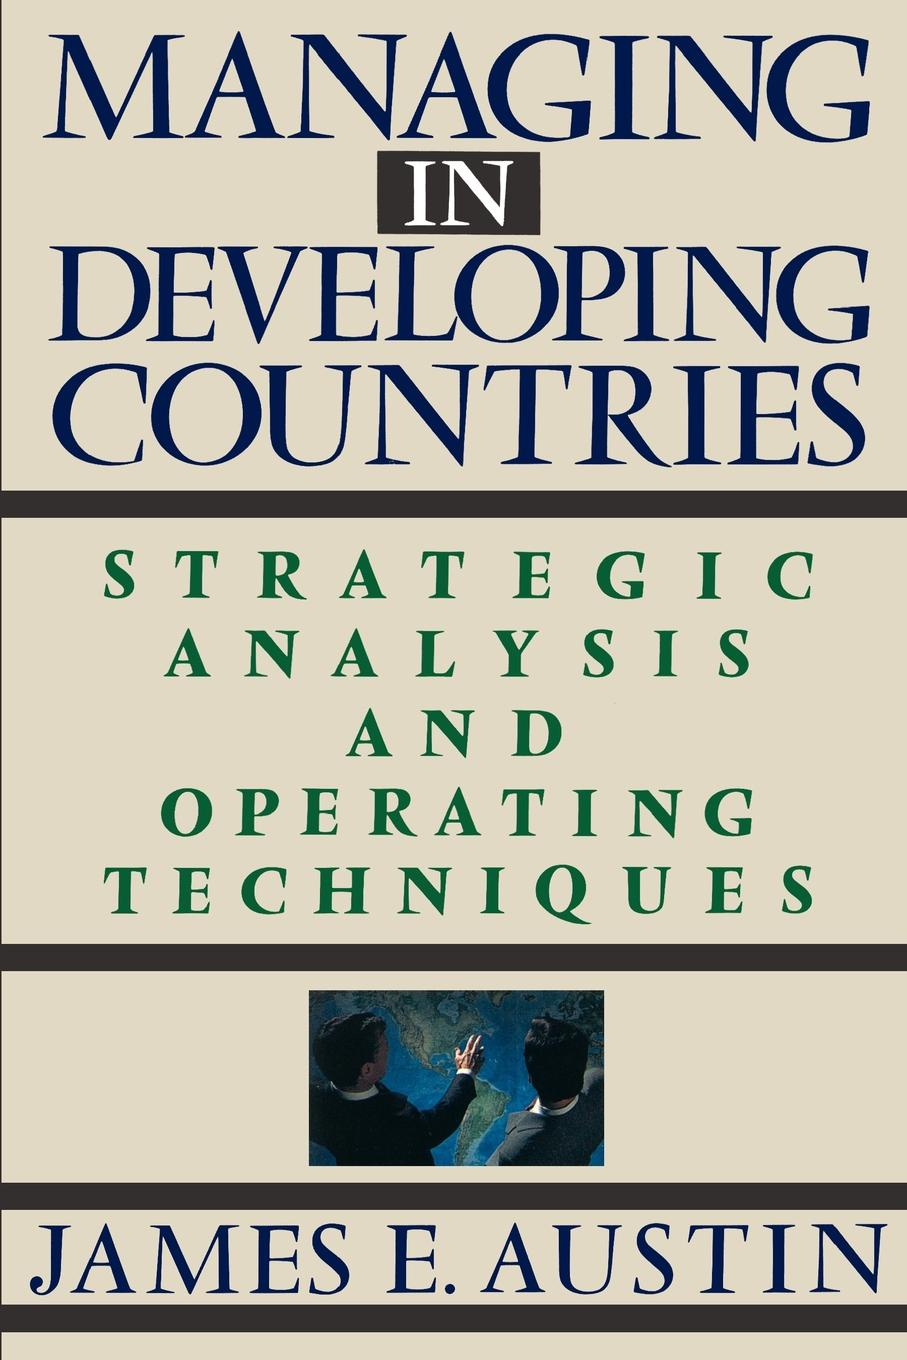 James E. Austin Managing in Developing Countries. Strategic Analysis and Operating Techniques optimal health strategy in poorest developing countries